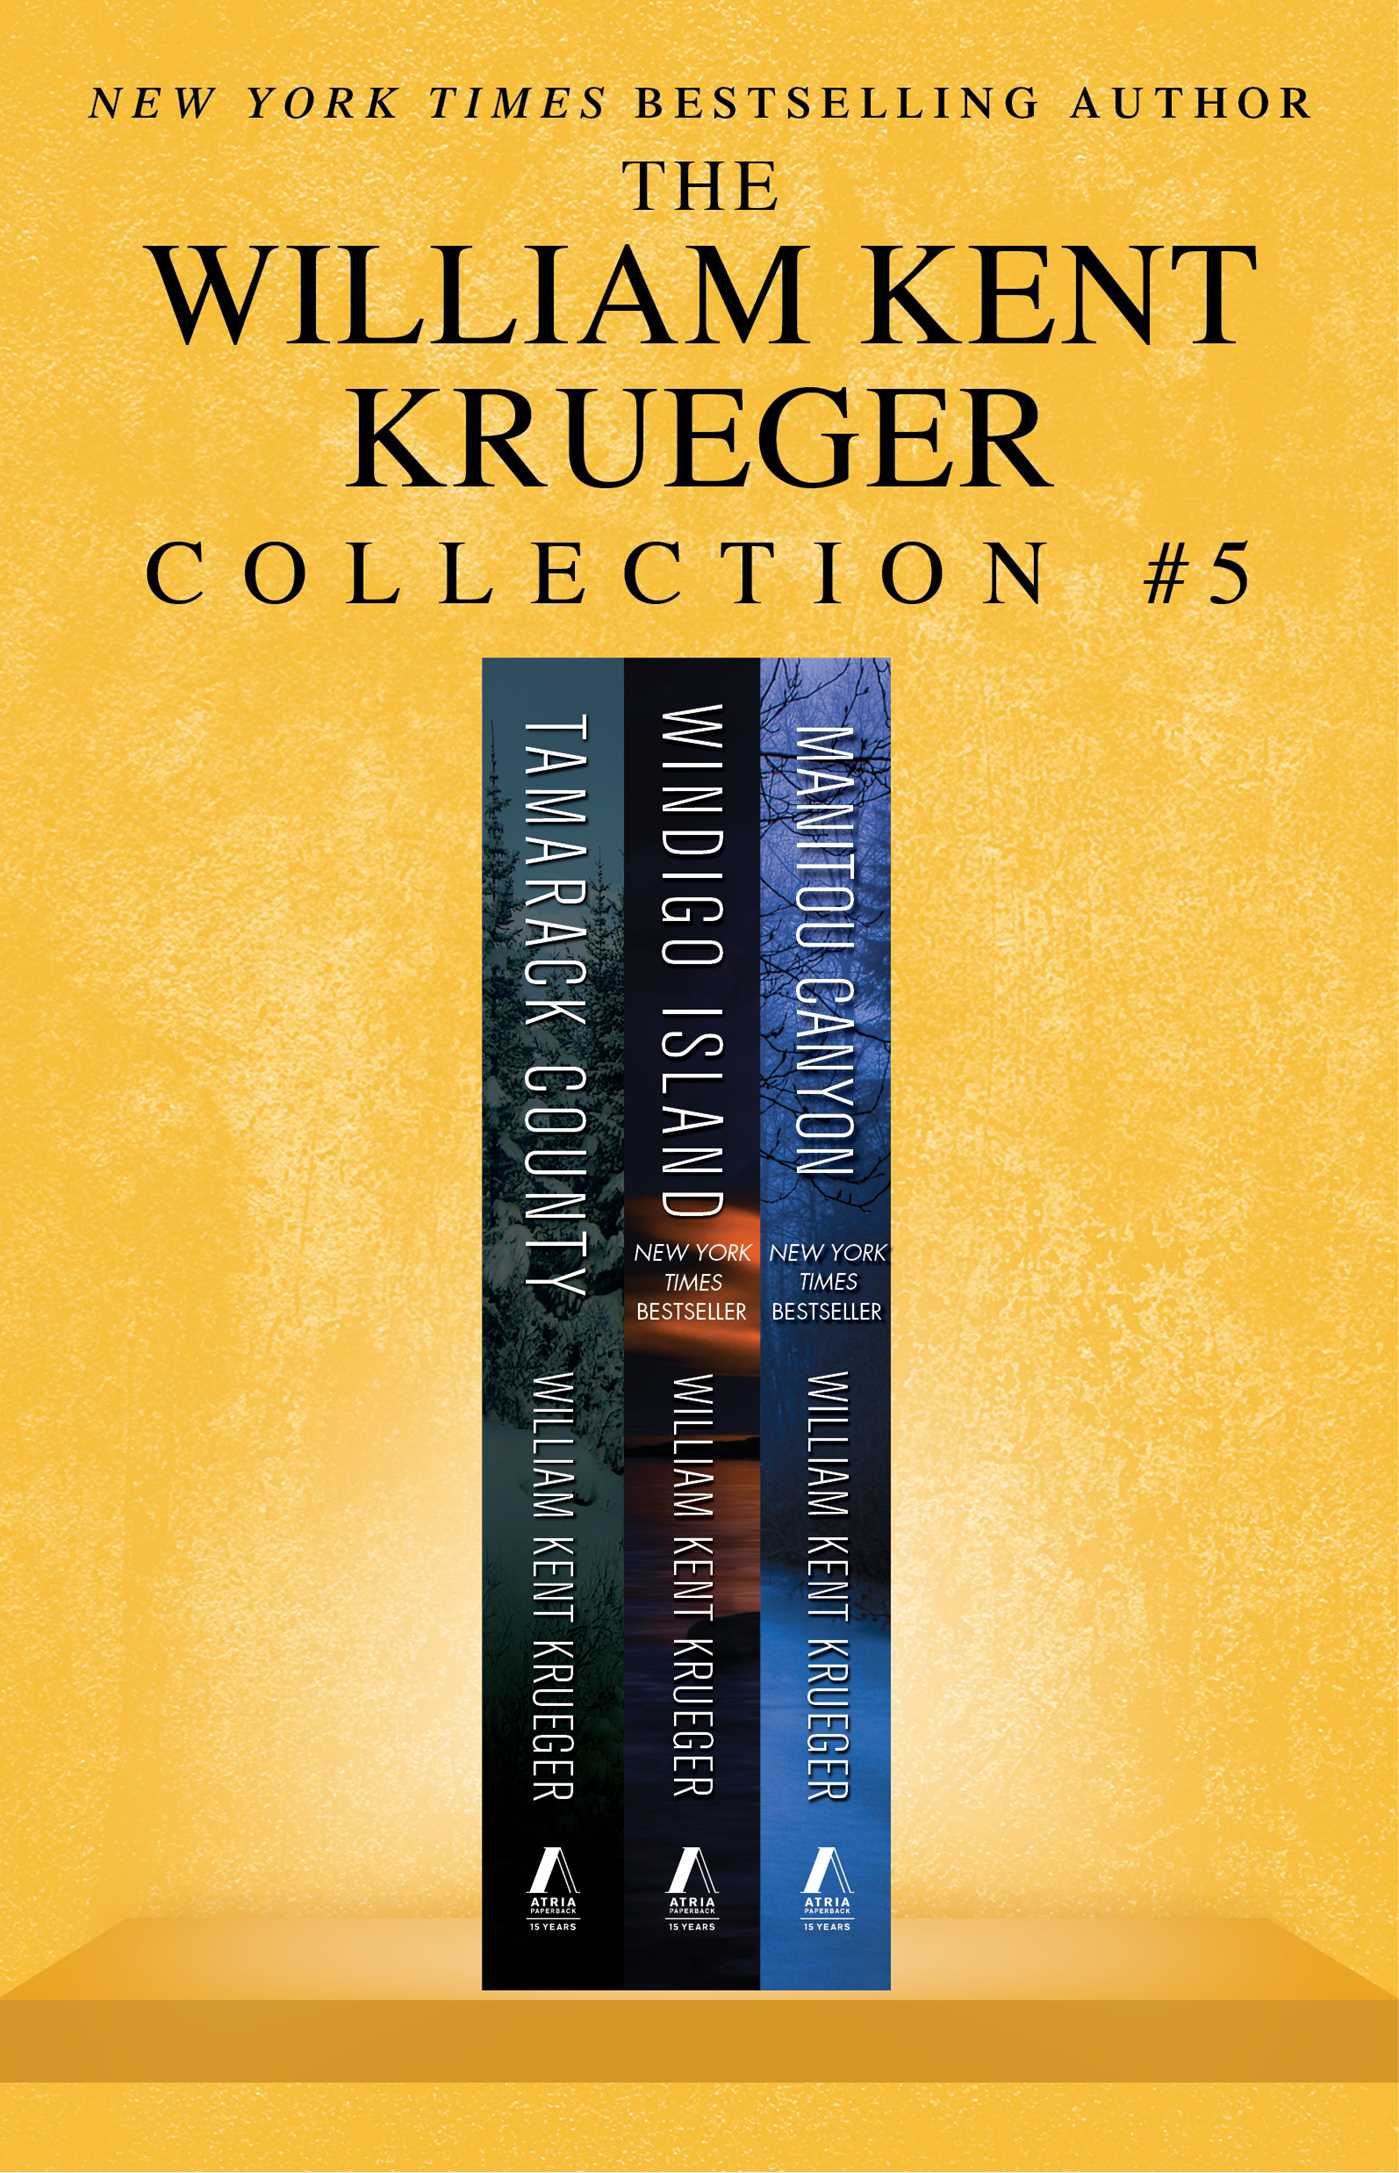 William kent krueger collection 5 9781501190285 hr